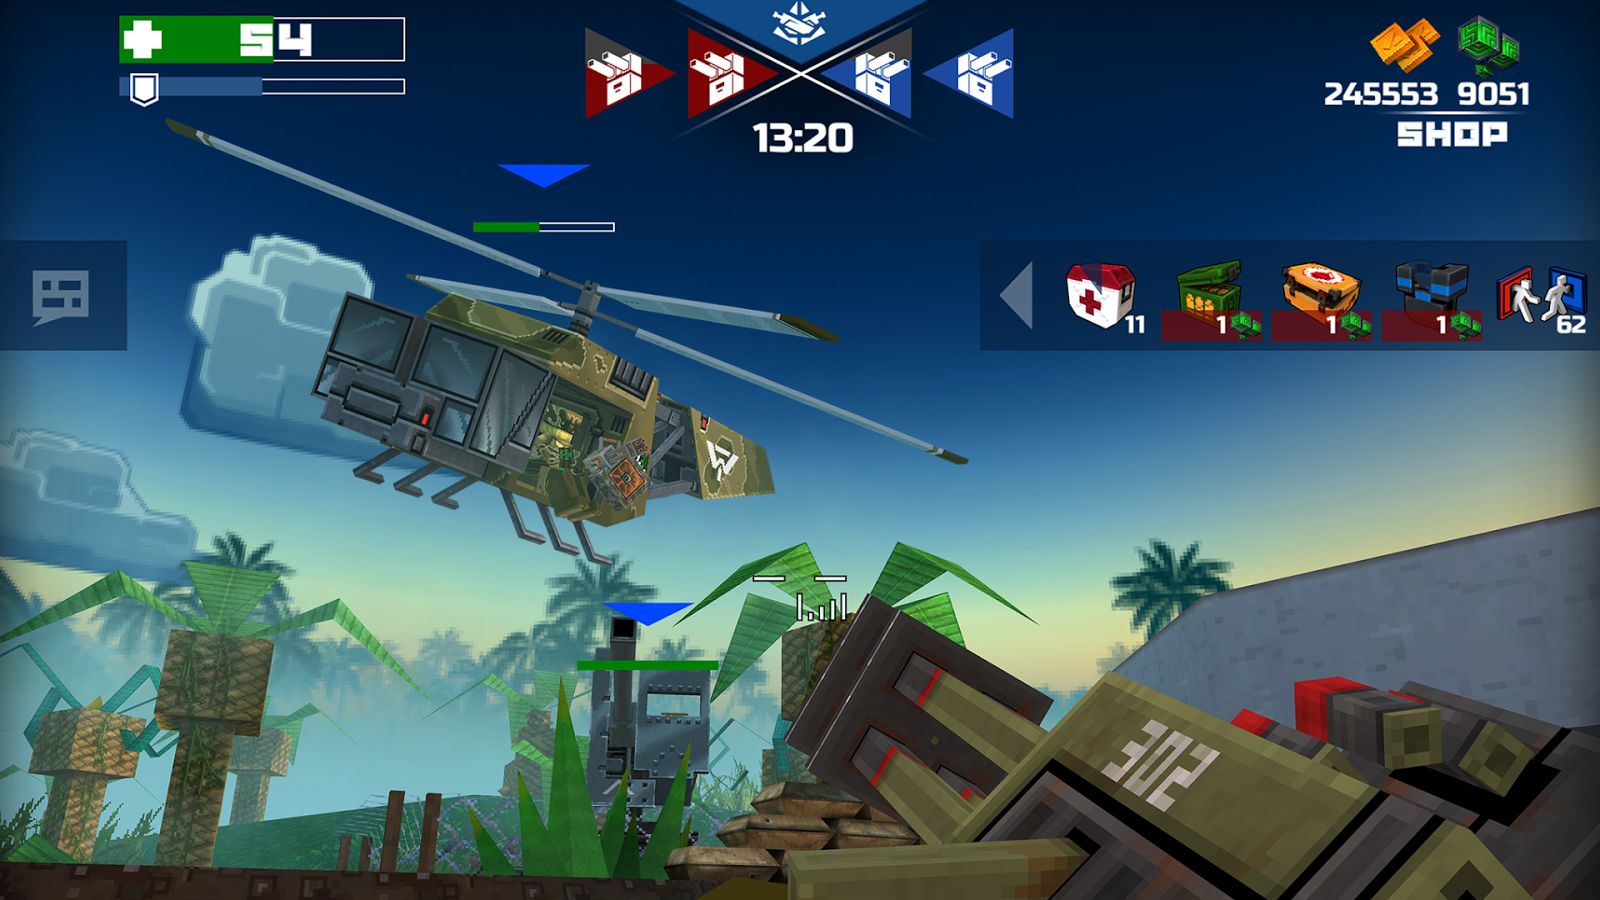 Pixelfield - Best FPS MOBA Strategy Game Screenshot 14